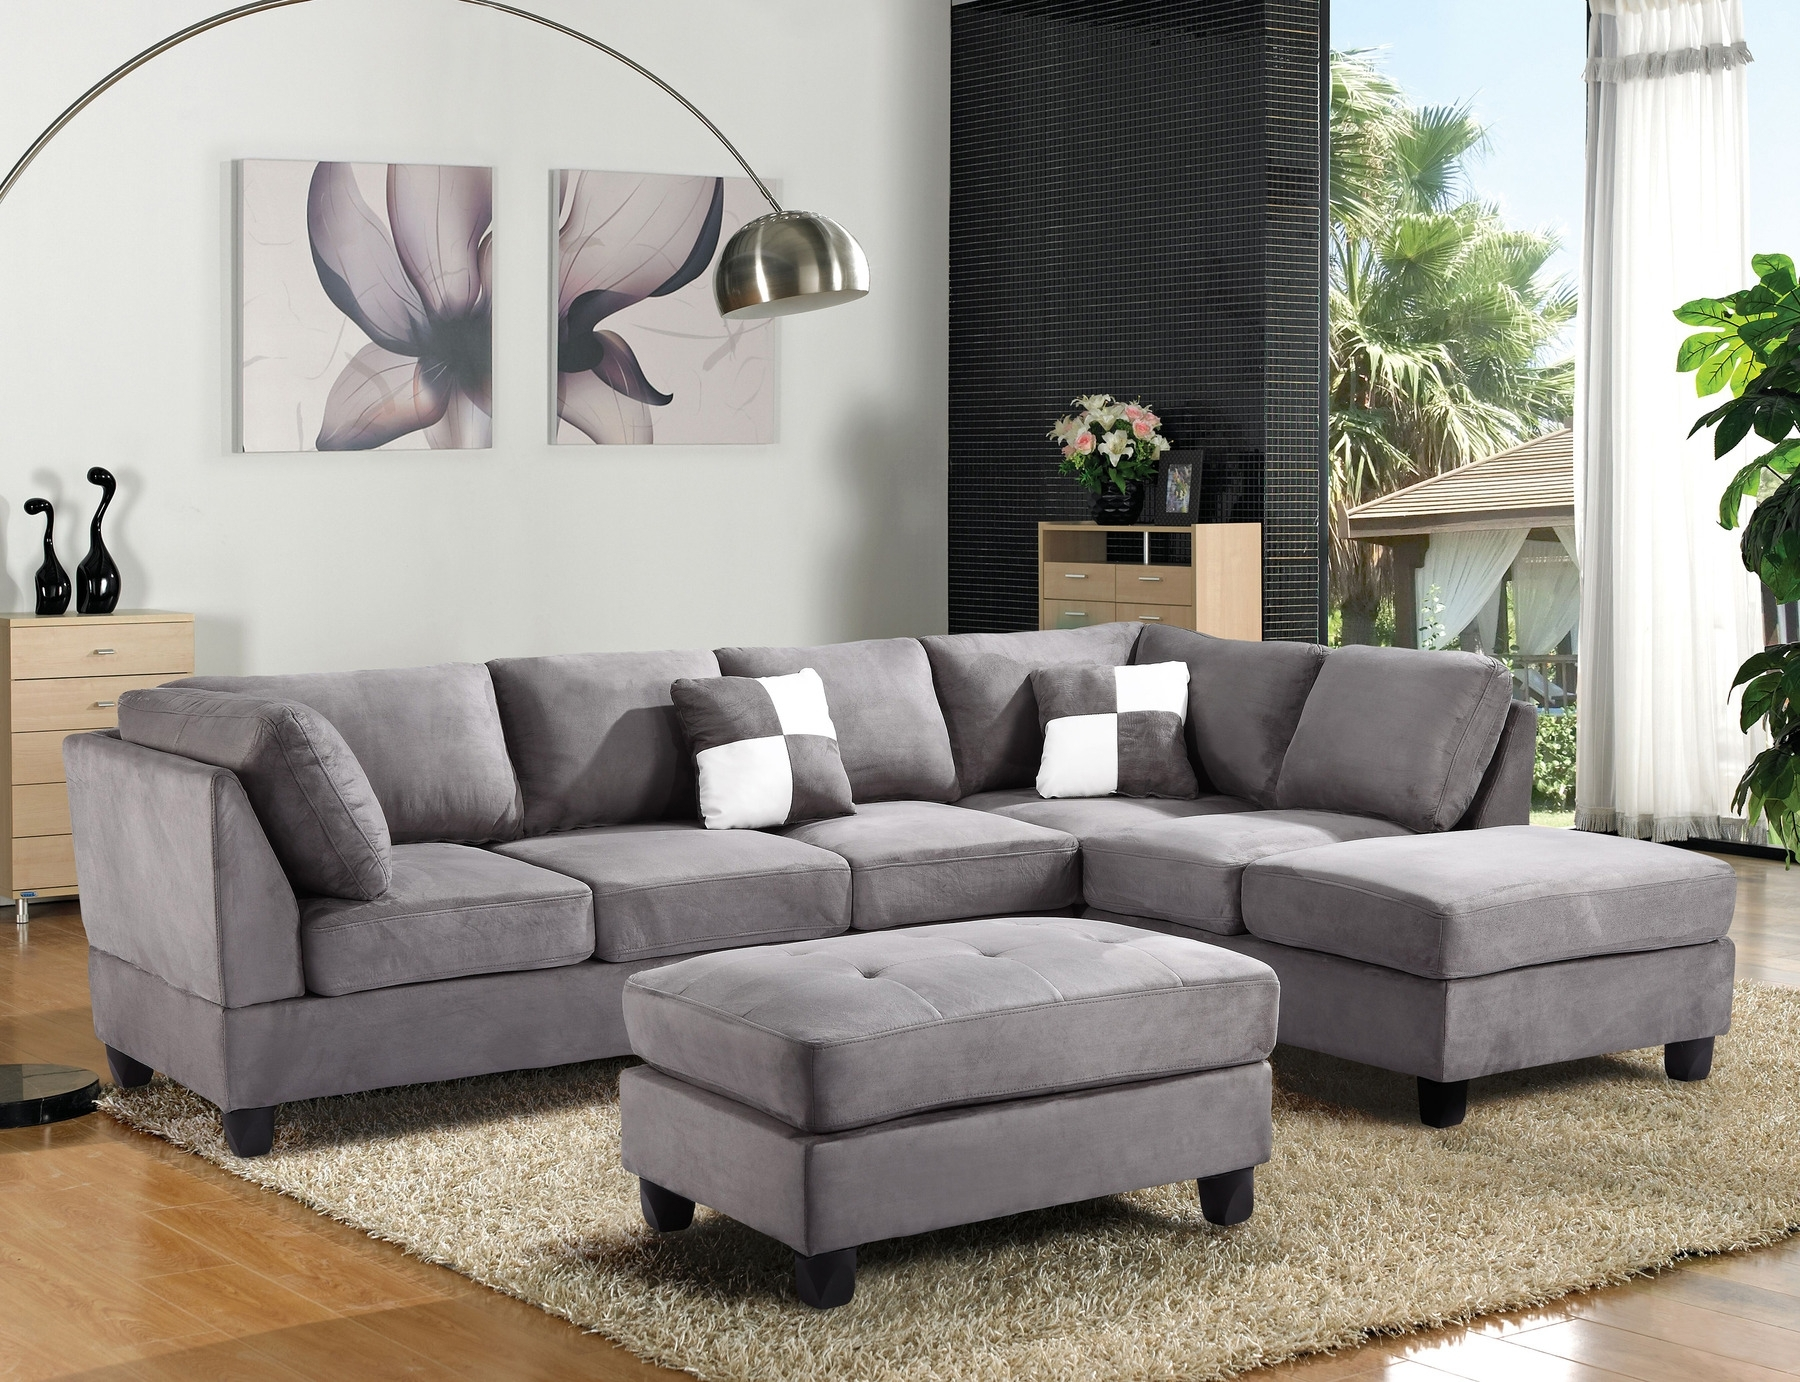 Quebec Sectional Sofas With Regard To Well Known Off Agata Light Grey Sectional Sofas Gray Sofa Modern Fabric (View 17 of 20)